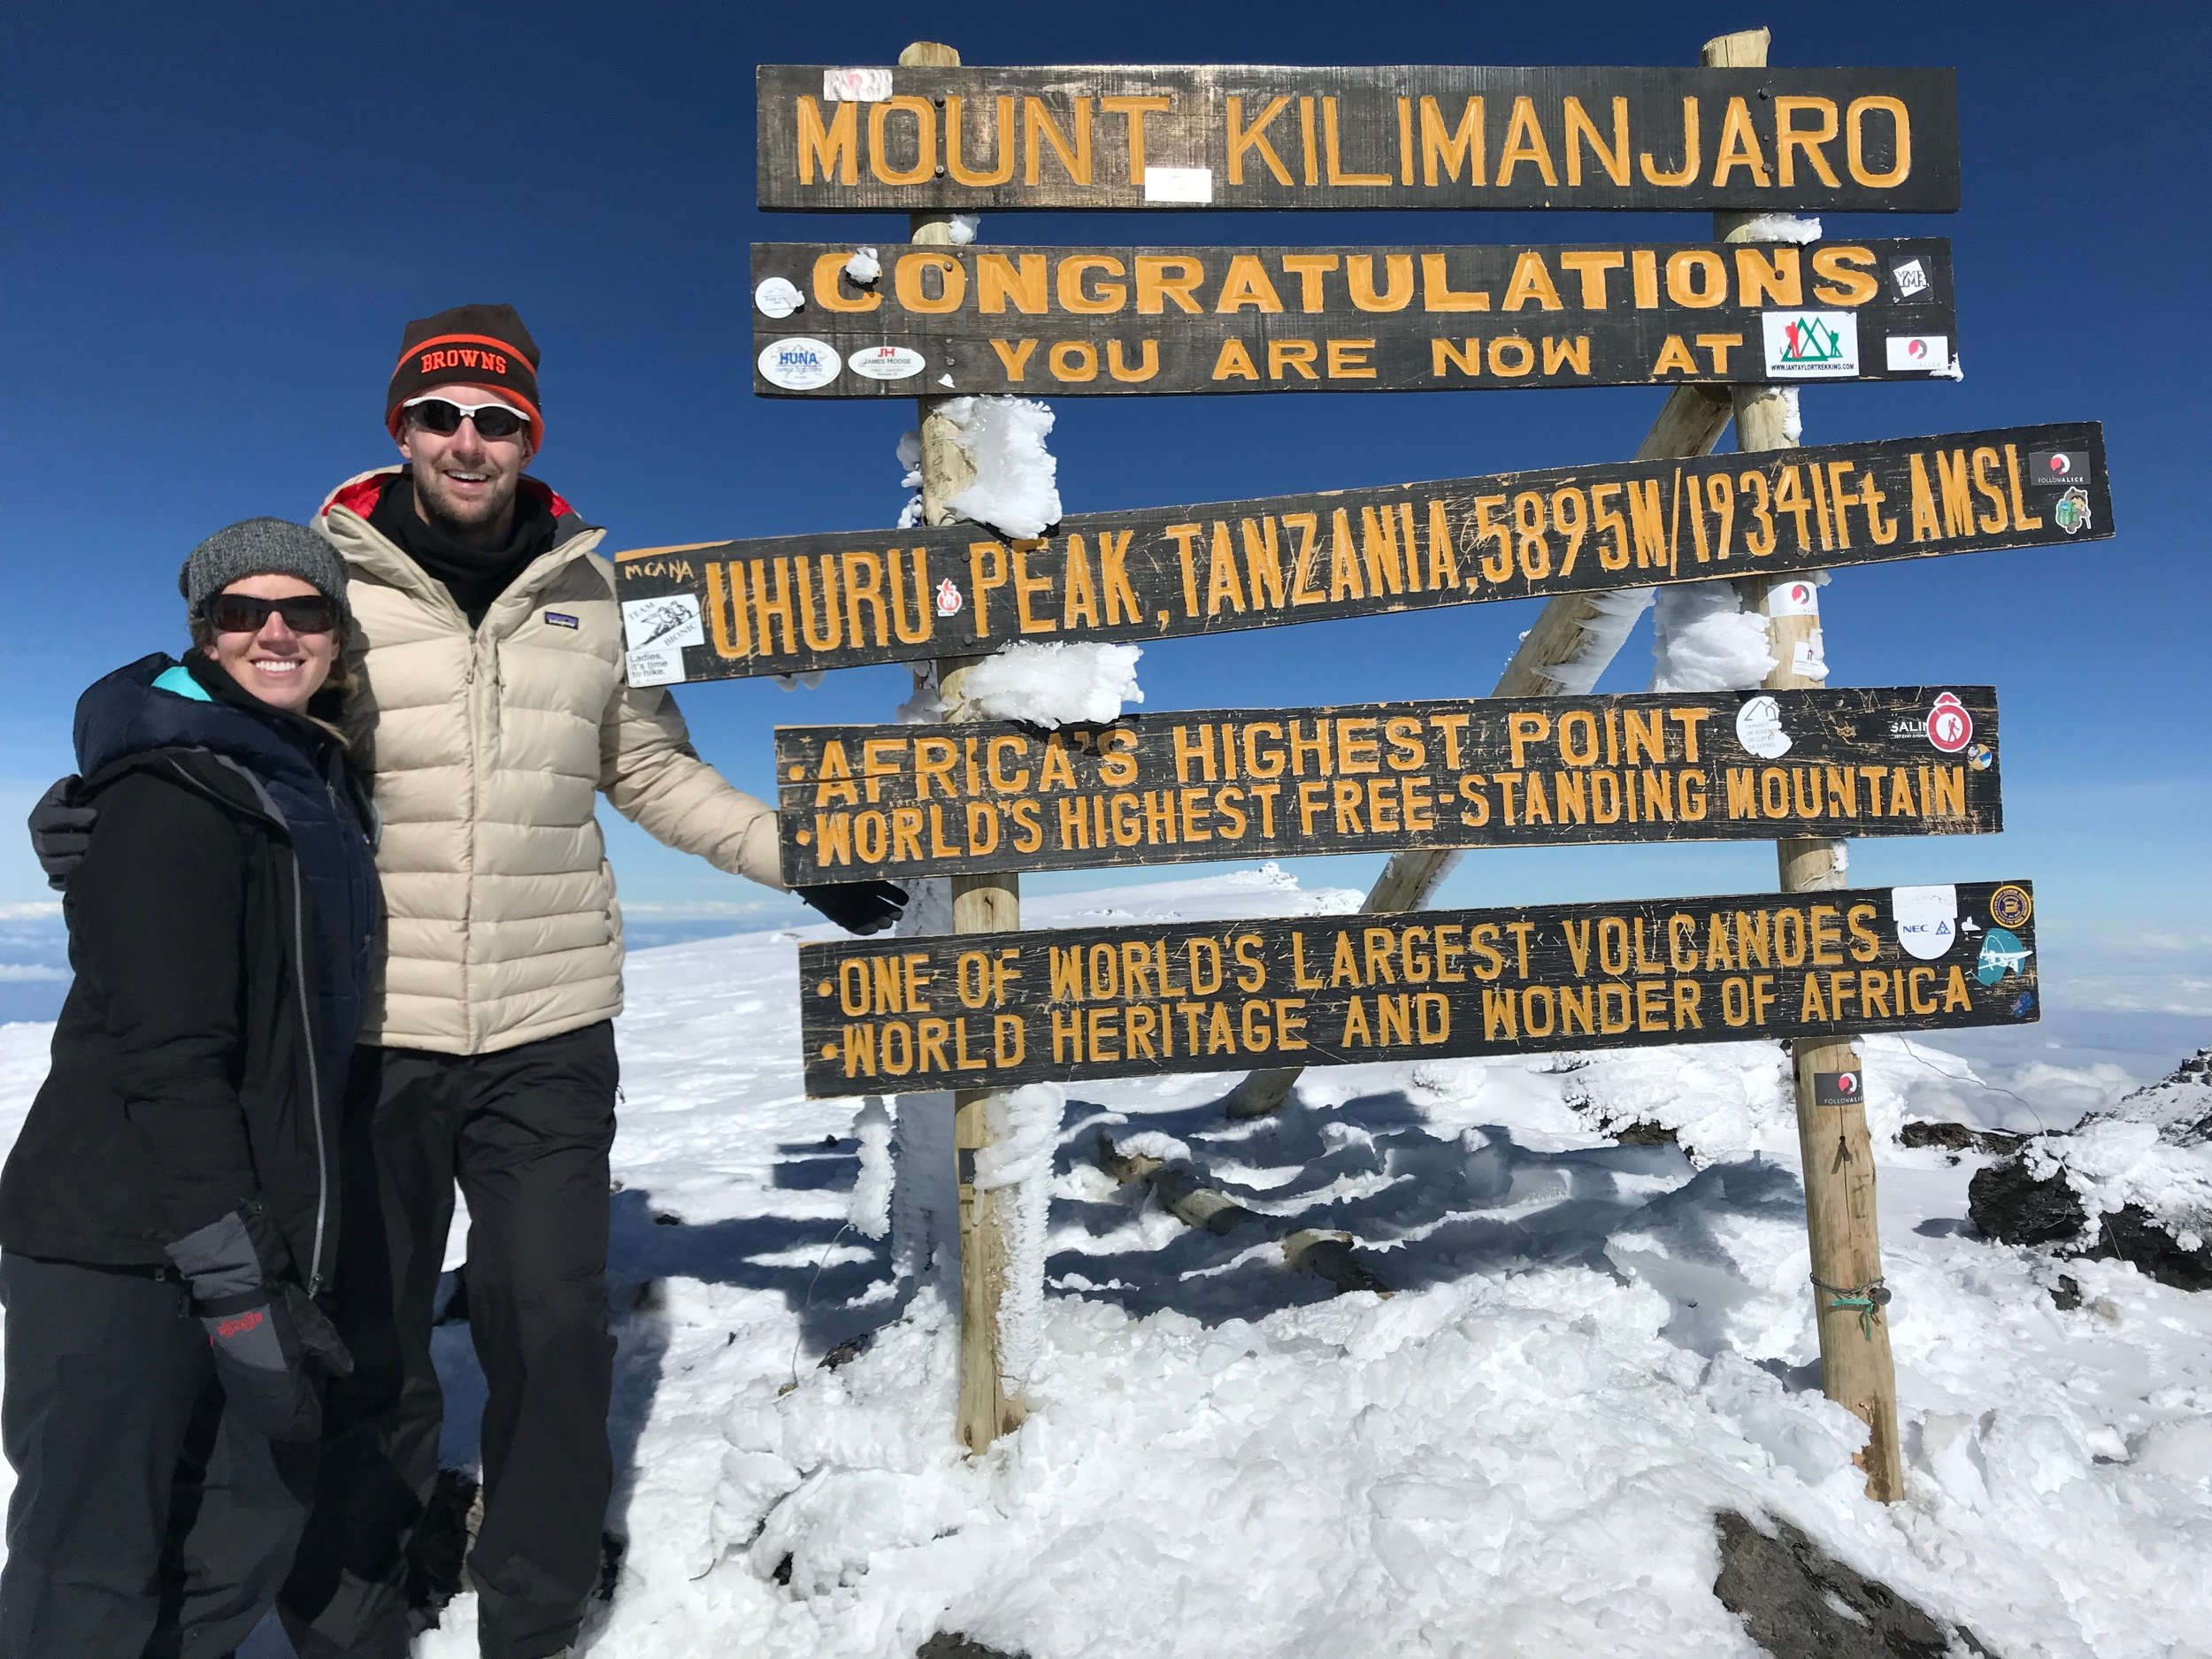 Kelsey + Matt Climb Kilimanjaro - In October 2018, we set out to climb Mount Kilimanjaro to fundraise for the Leukemia & Lymphoma Society. Together with a group of 19 other LLS Climb2Cure participants, we began our 8-day trek. We've compiled our favorite photos with the highlights of each day! Thank you all for your support as we trained and prepped for the trip, but more importantly, thank you for your generous support of the cause that is so important to us.